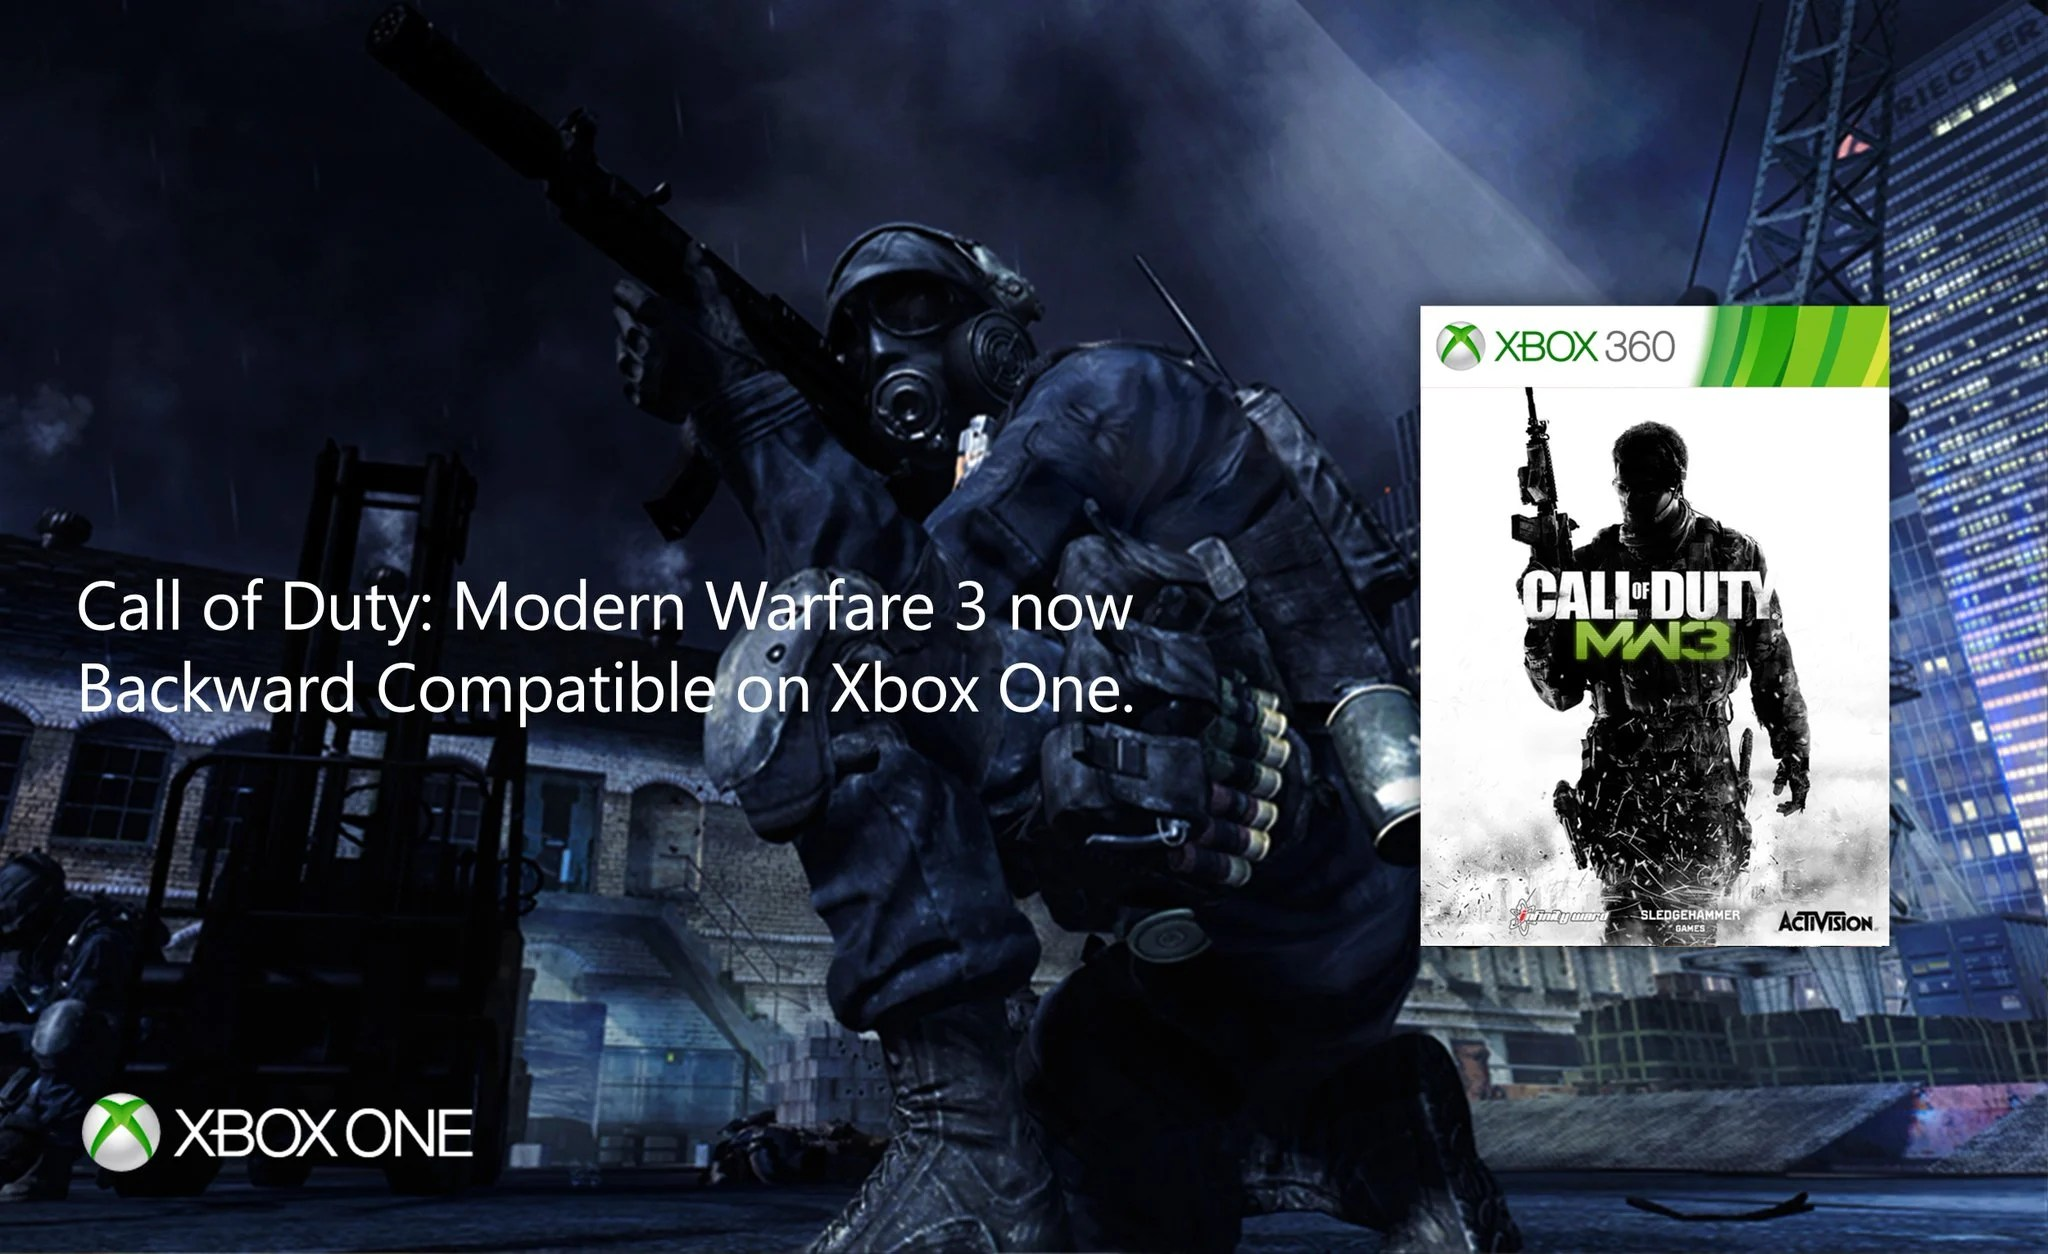 Call Of Duty Modern Warfare 3 Now Backwards Compatible On Xbox One Charlie INTEL